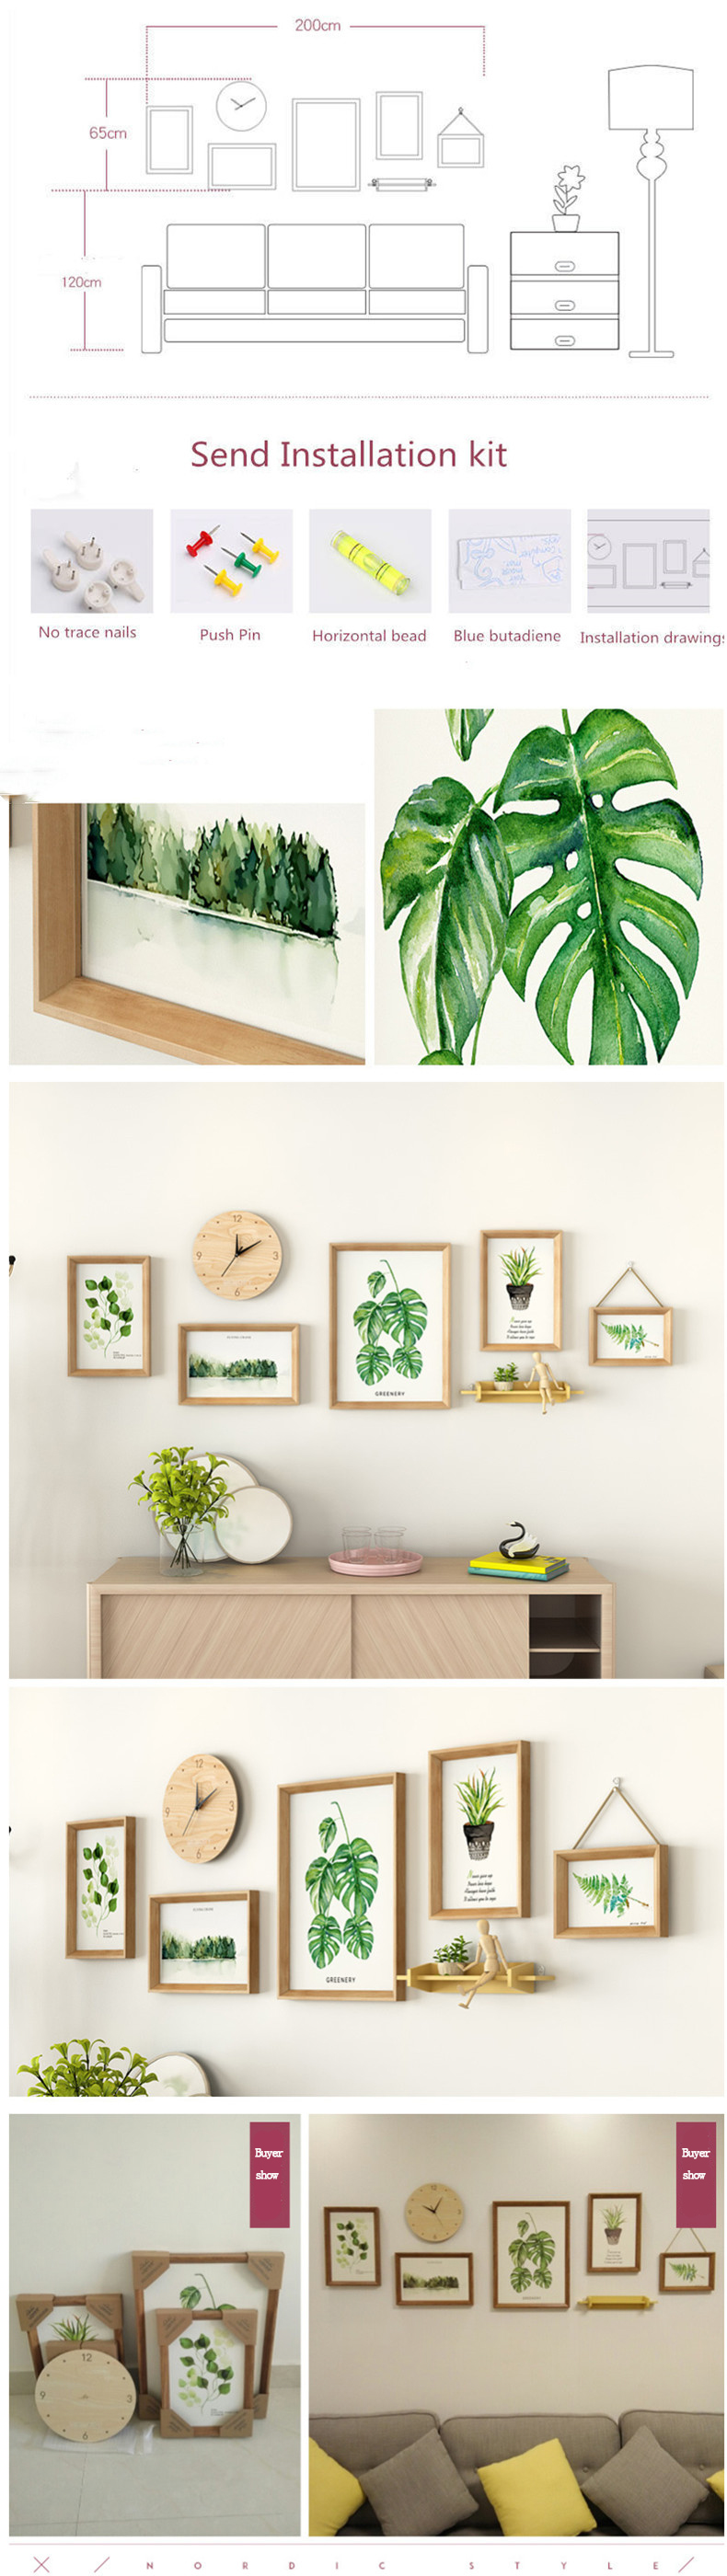 Green Garden 5PC Photo Frame Set - Canvas Paintings Under $1,000